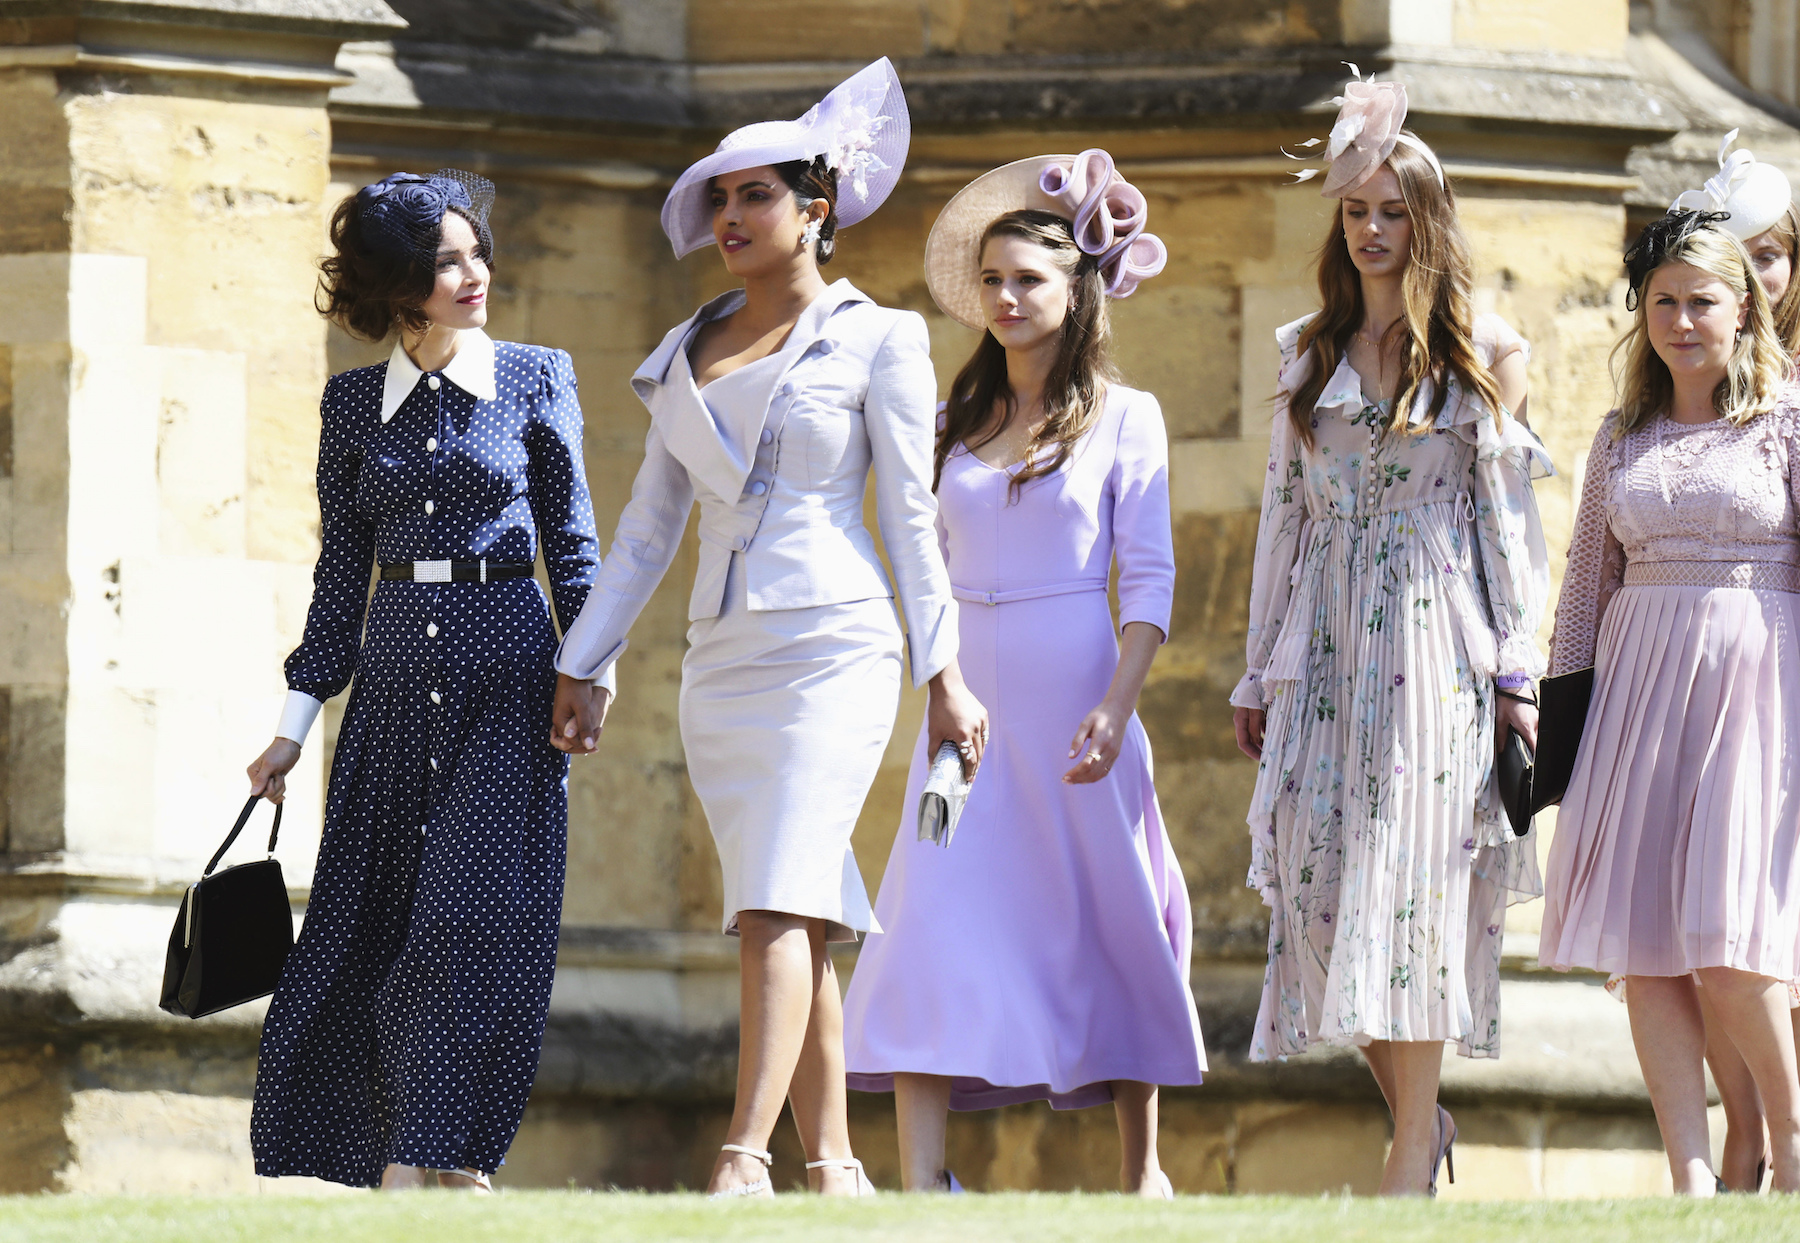 "<div class=""meta image-caption""><div class=""origin-logo origin-image ap""><span>AP</span></div><span class=""caption-text"">Abigail Spencer and Priyanka Chopra arrive at the wedding of Prince Harry to Ms Meghan Markle. (Chris Jackson/Getty Images)</span></div>"